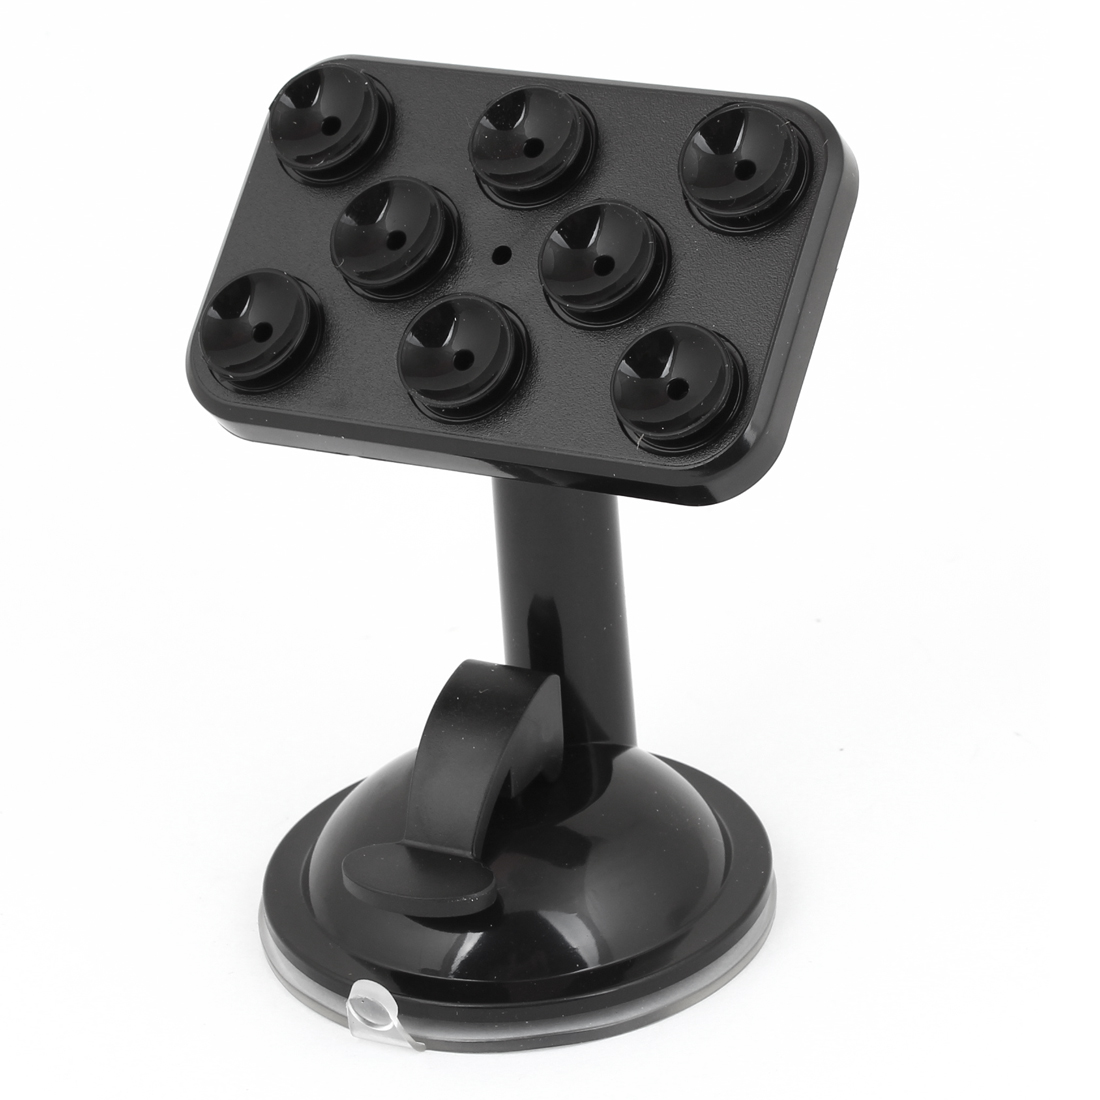 Car Vehicle Black Adjustable Mobile Phone MP4 MP3 Sucker Holder Stand